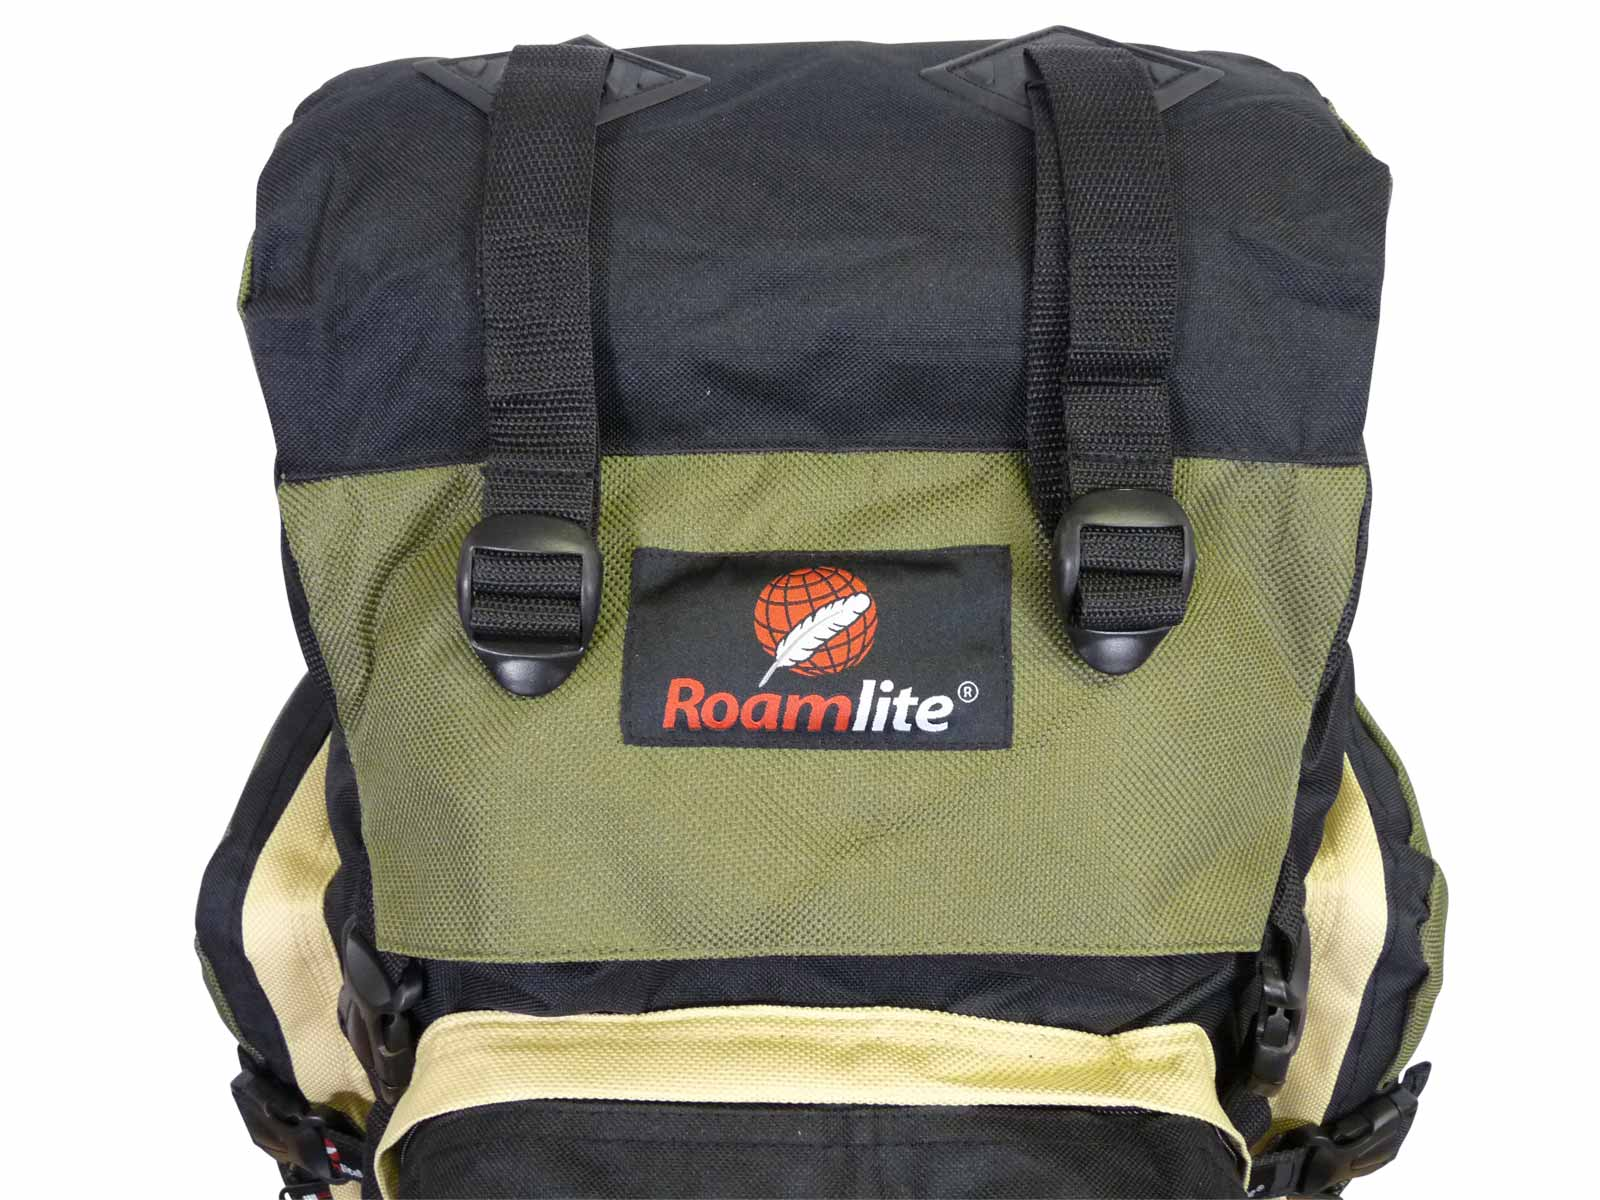 Large XL Camping Festival Backpack RL15KGt